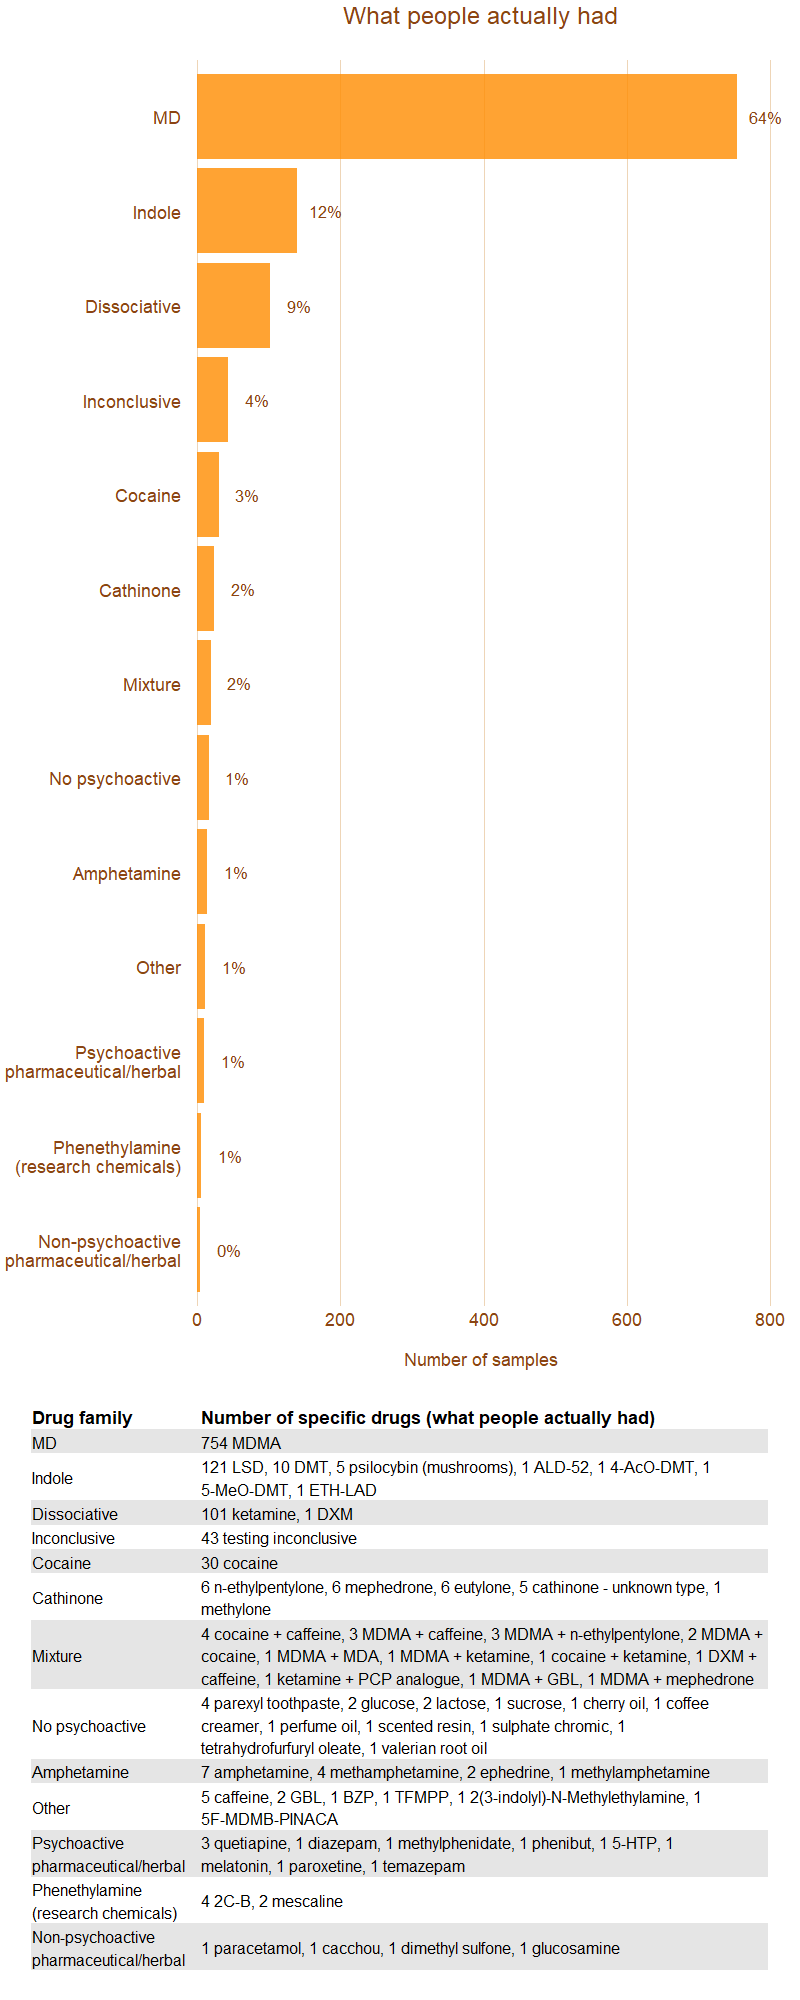 Image, chart of what people actually had